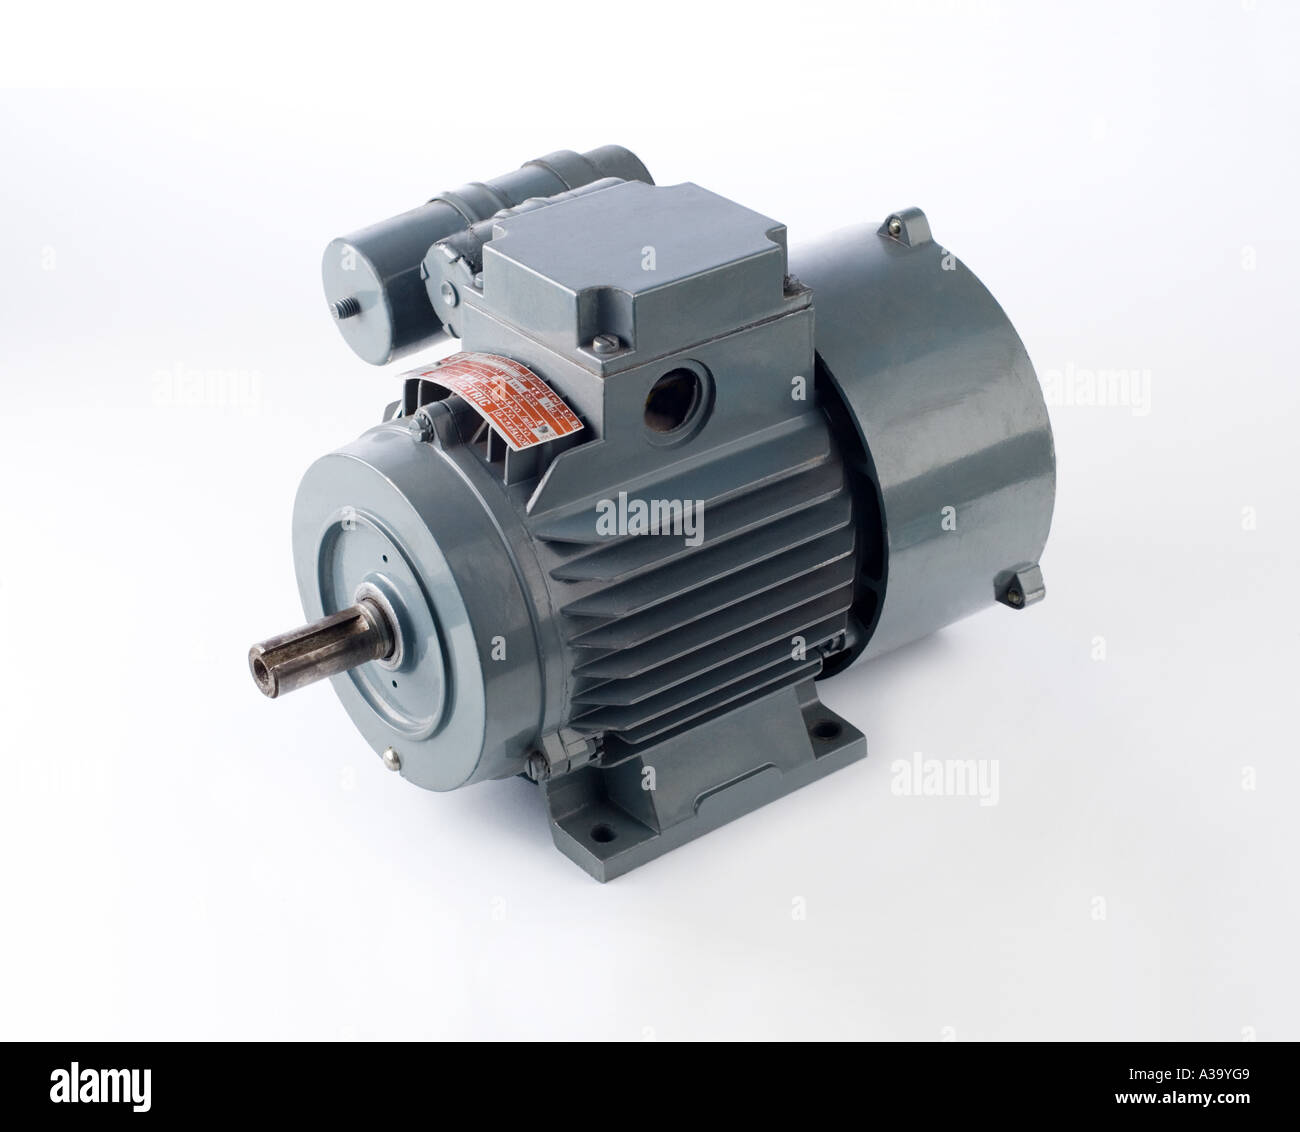 industrial electric motor 1 hp ac 1450 rpm - Stock Image